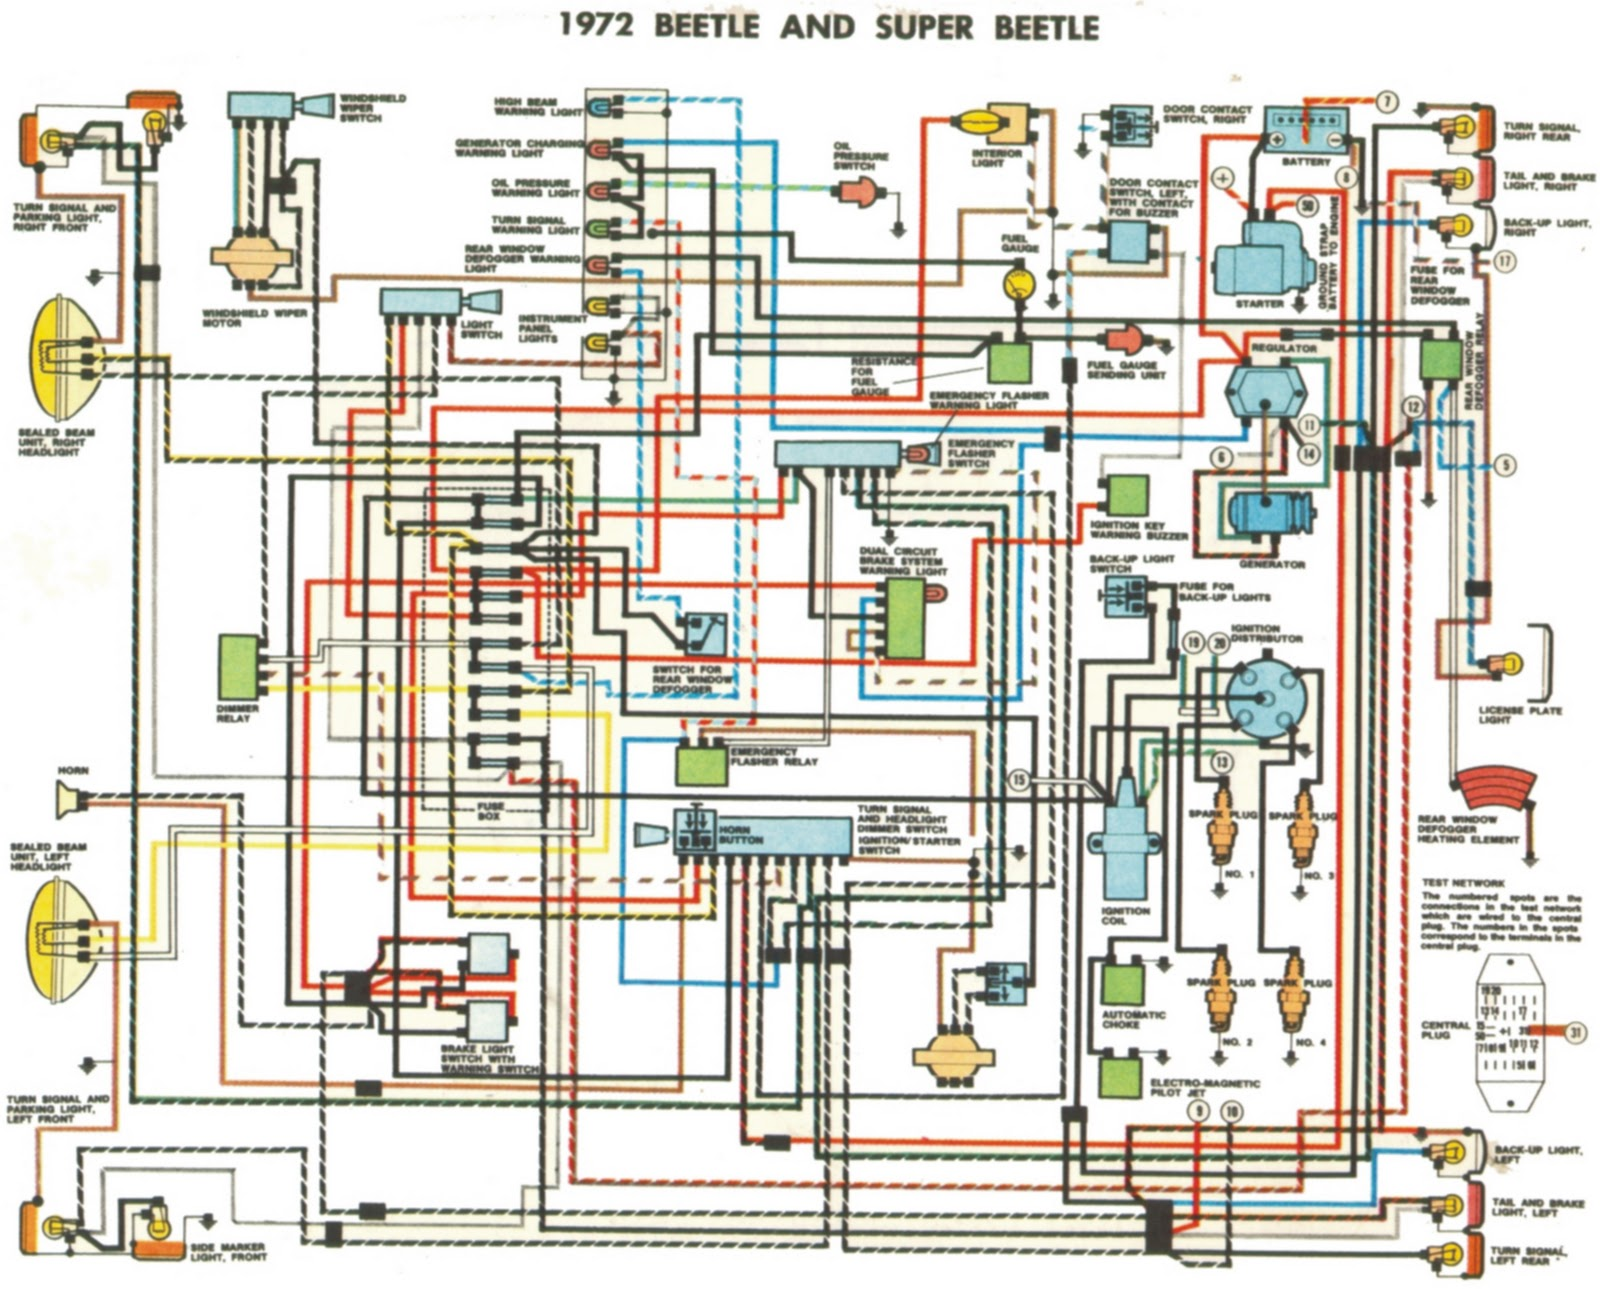 1972 vw bug wiring diagram lighting wiring schematic data 1972 Chevelle Wiring Diagram 1972 volkswagen beetle wiring simple wiring diagram schema 1972 pontiac gto wiring diagram 1972 vw bug wiring diagram lighting